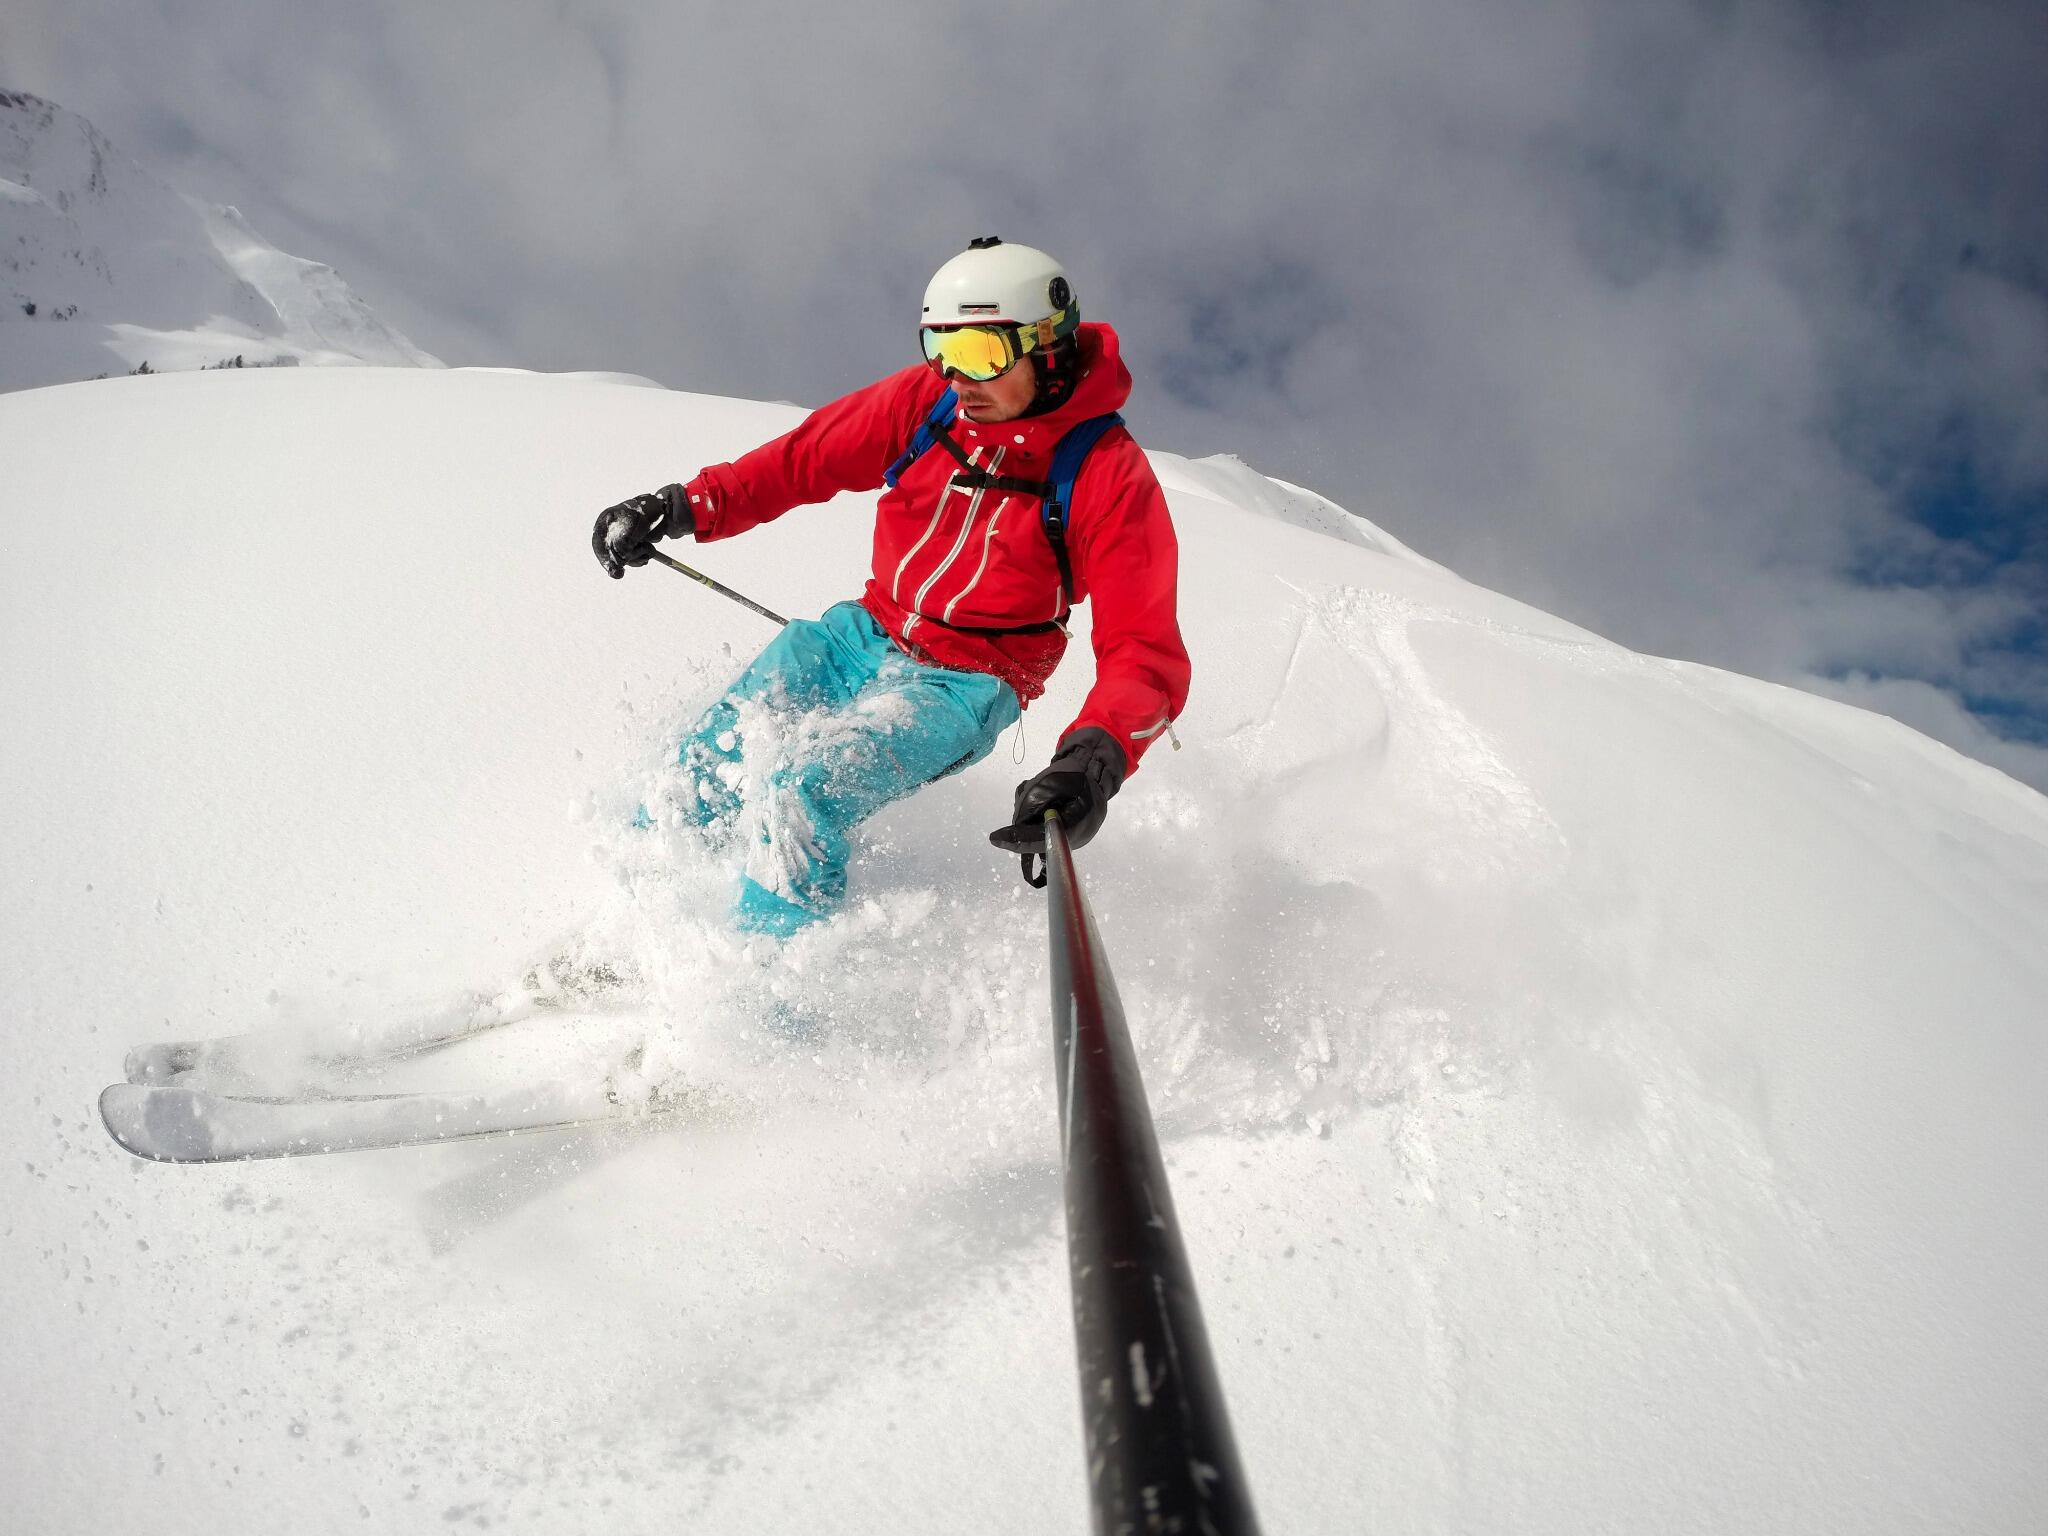 Photo of the Day! Powder day in Saalbach Hinterglemm in Austria. Photo by @duelago. #GoPro #Snow http://t.co/7XopSNJerG